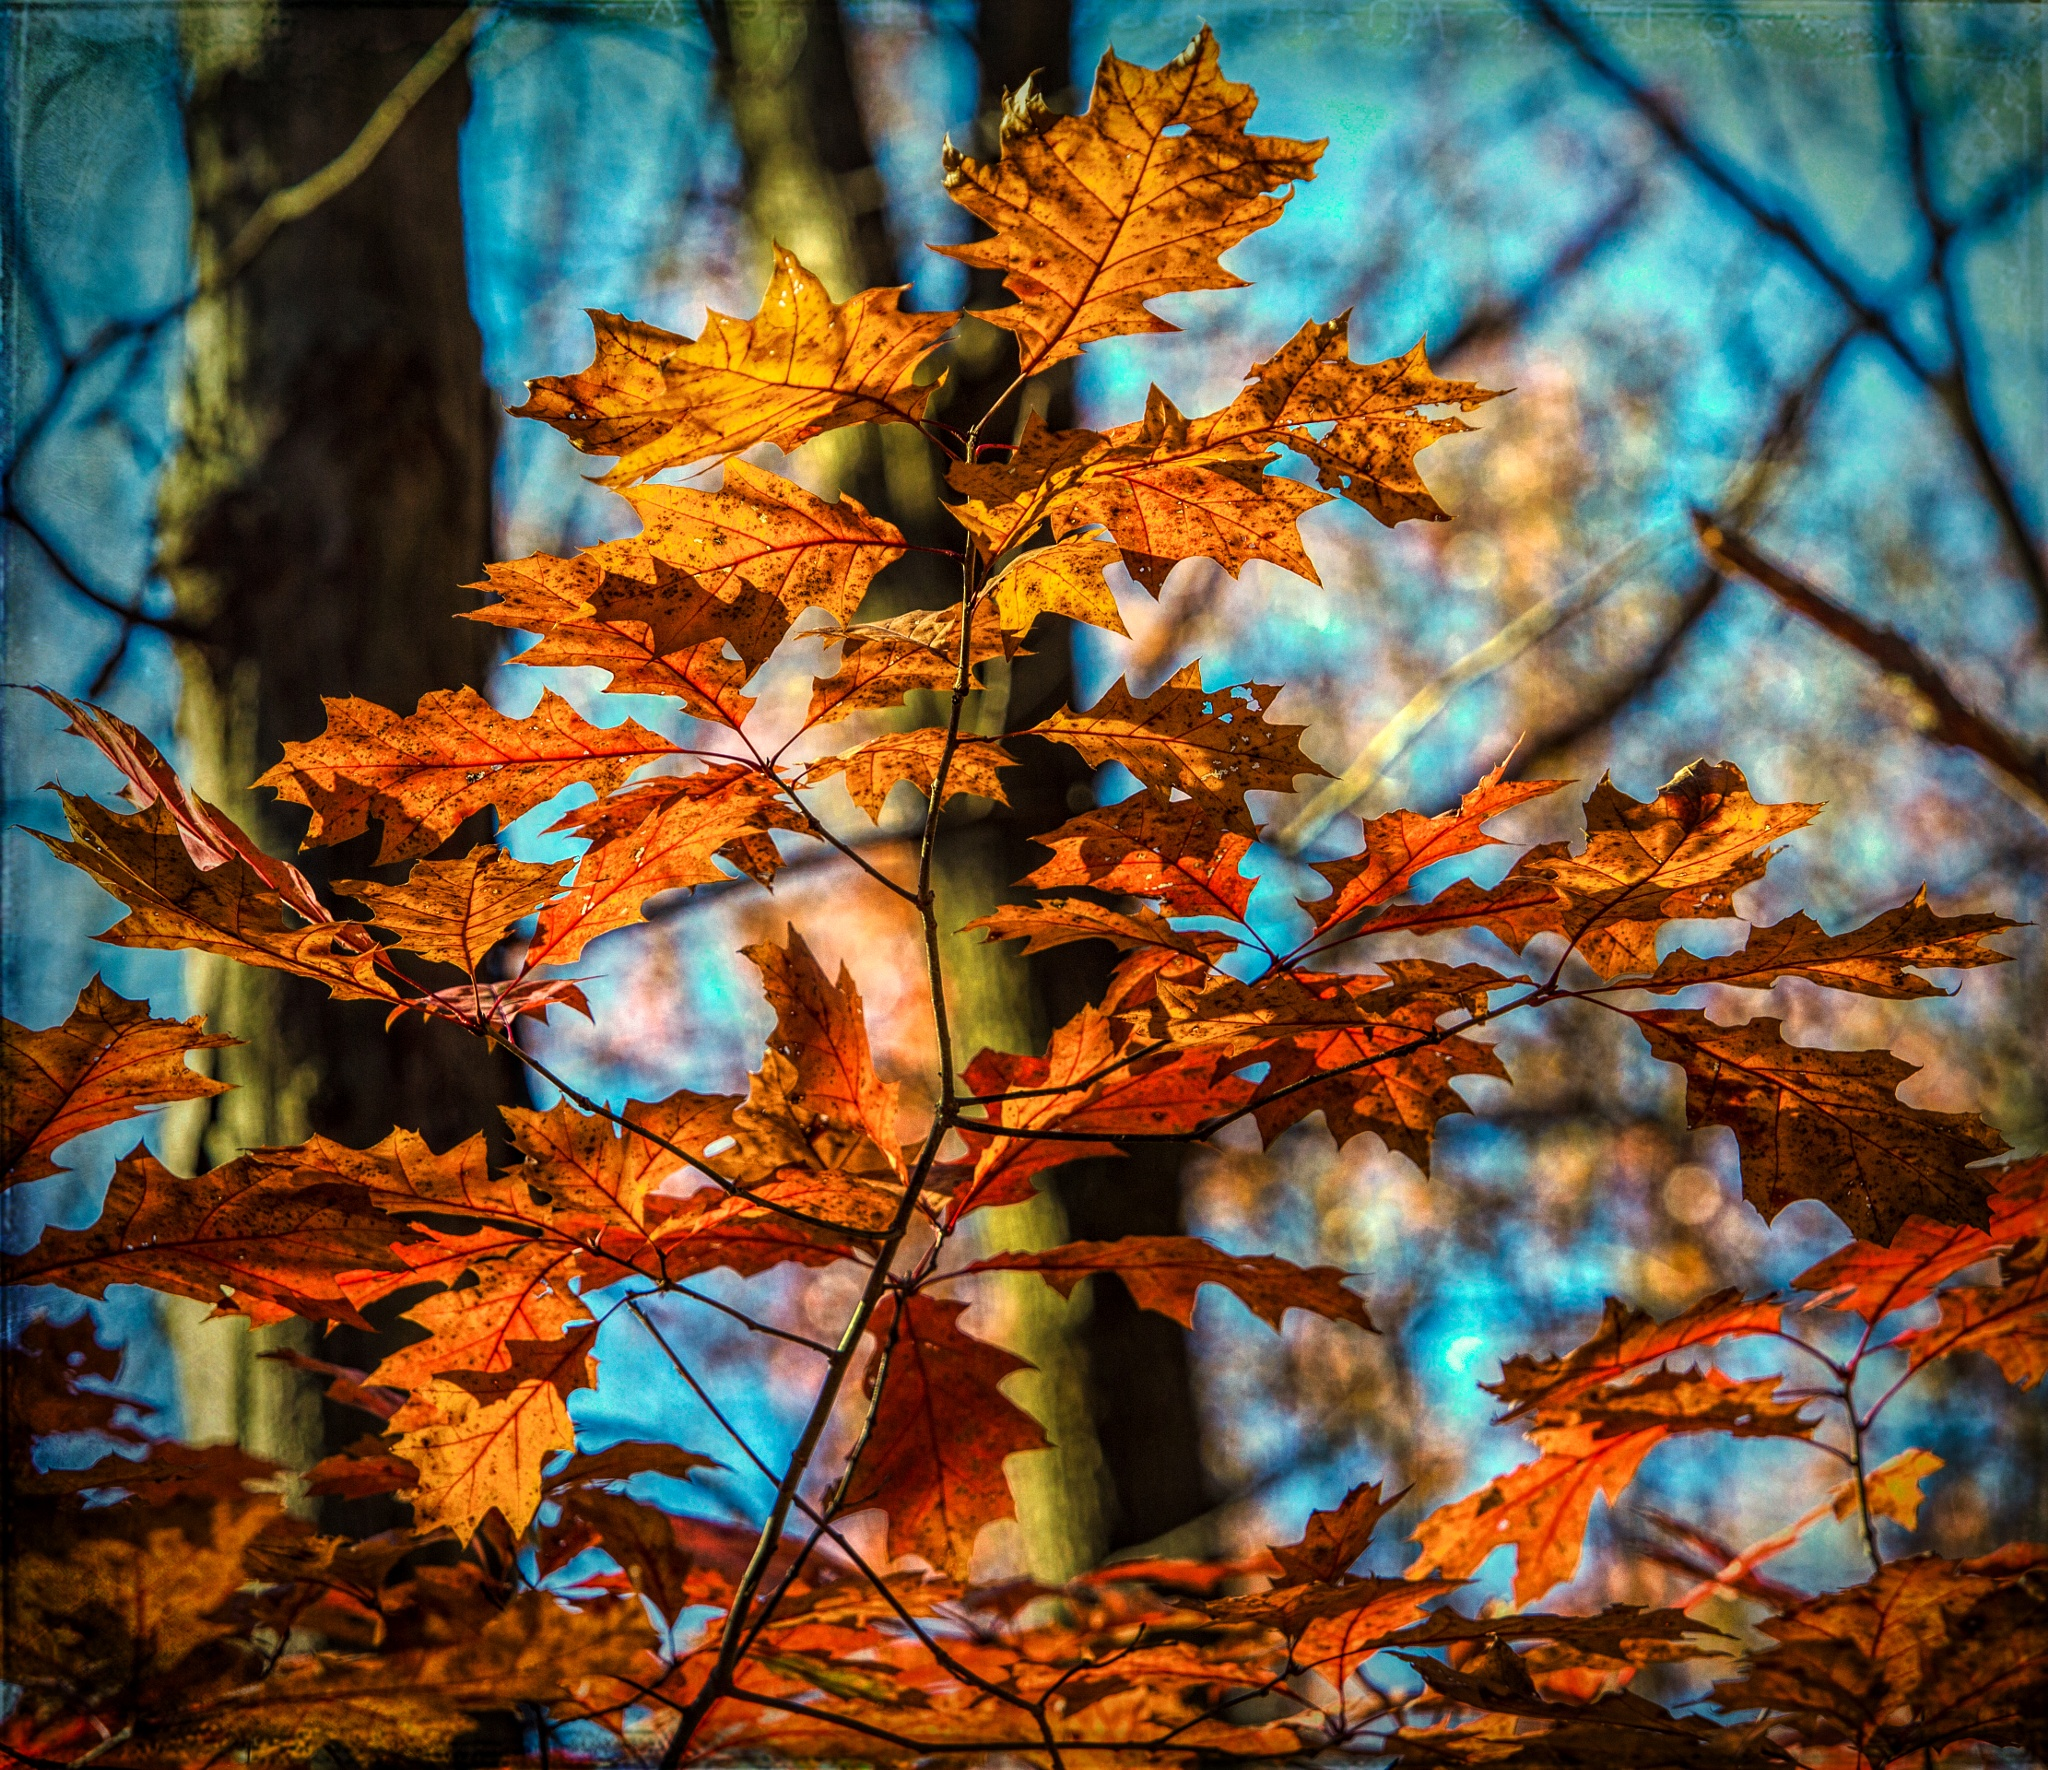 Glowing Red Leaves by John Watson